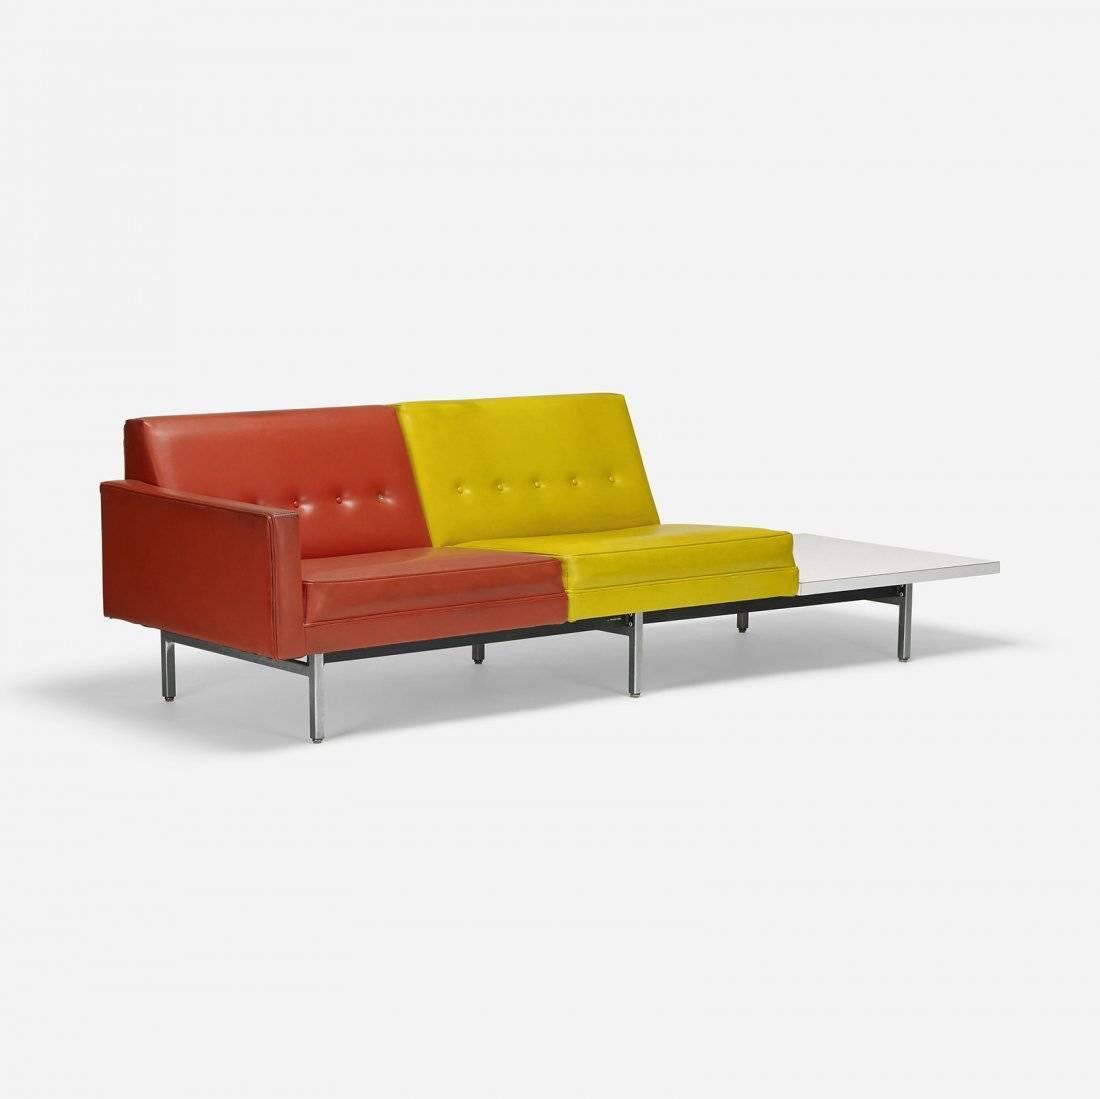 George Nelson Steel Frame Modular Sofa Herman Miller 1956 At 1stdibs